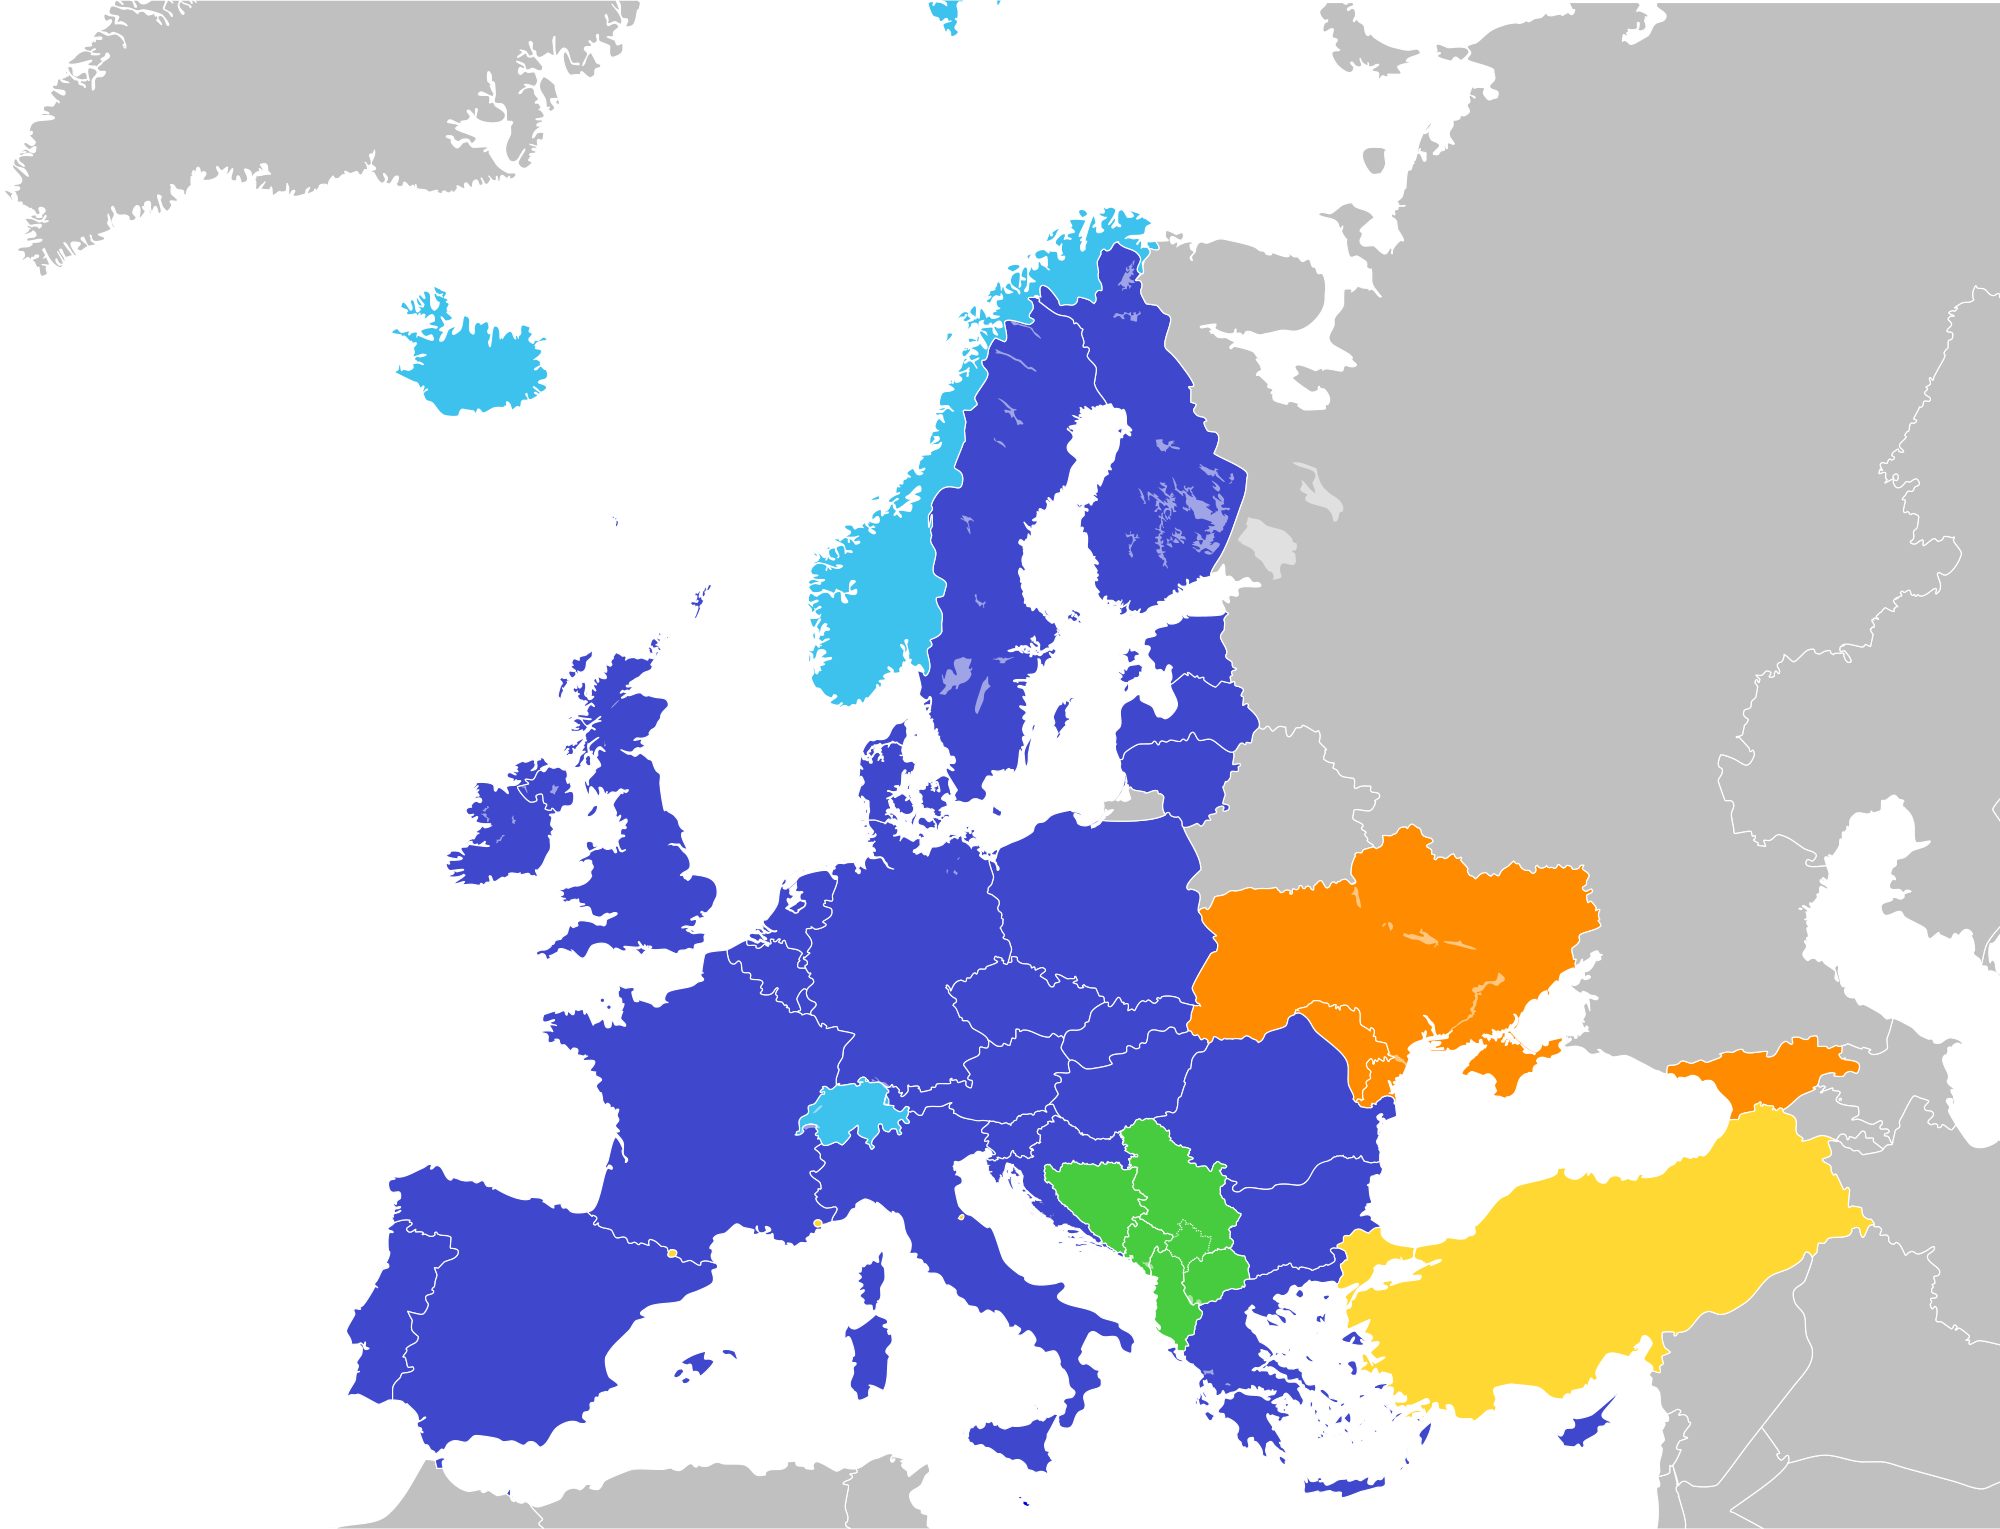 Integration wikipedia participation in. Europe clipart history european